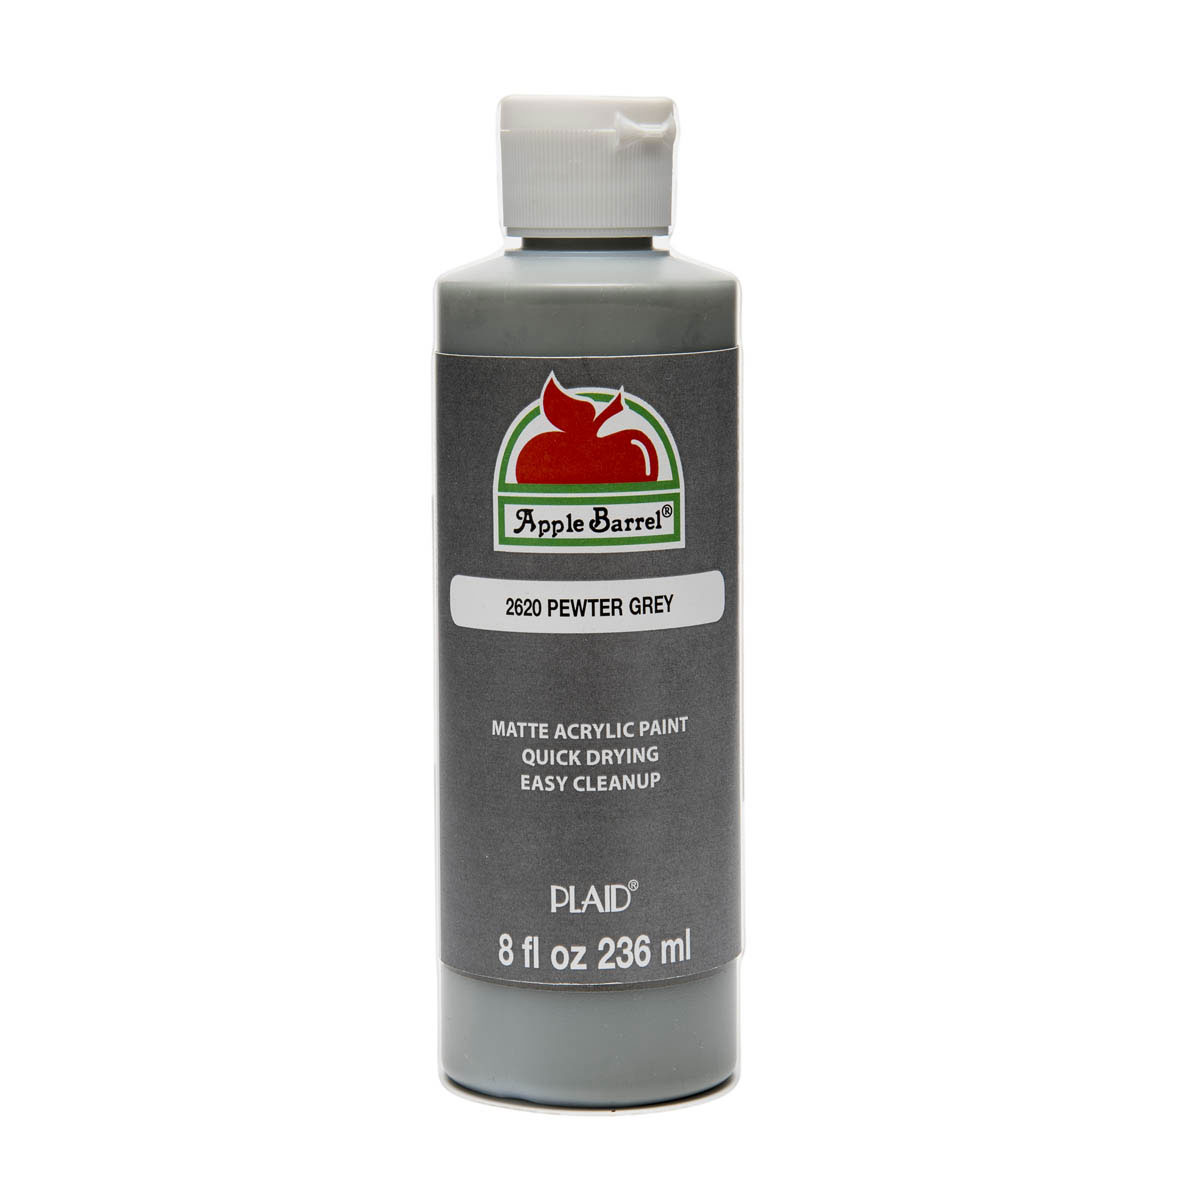 Apple Barrel ® Colors - Pewter Grey, 8 oz.